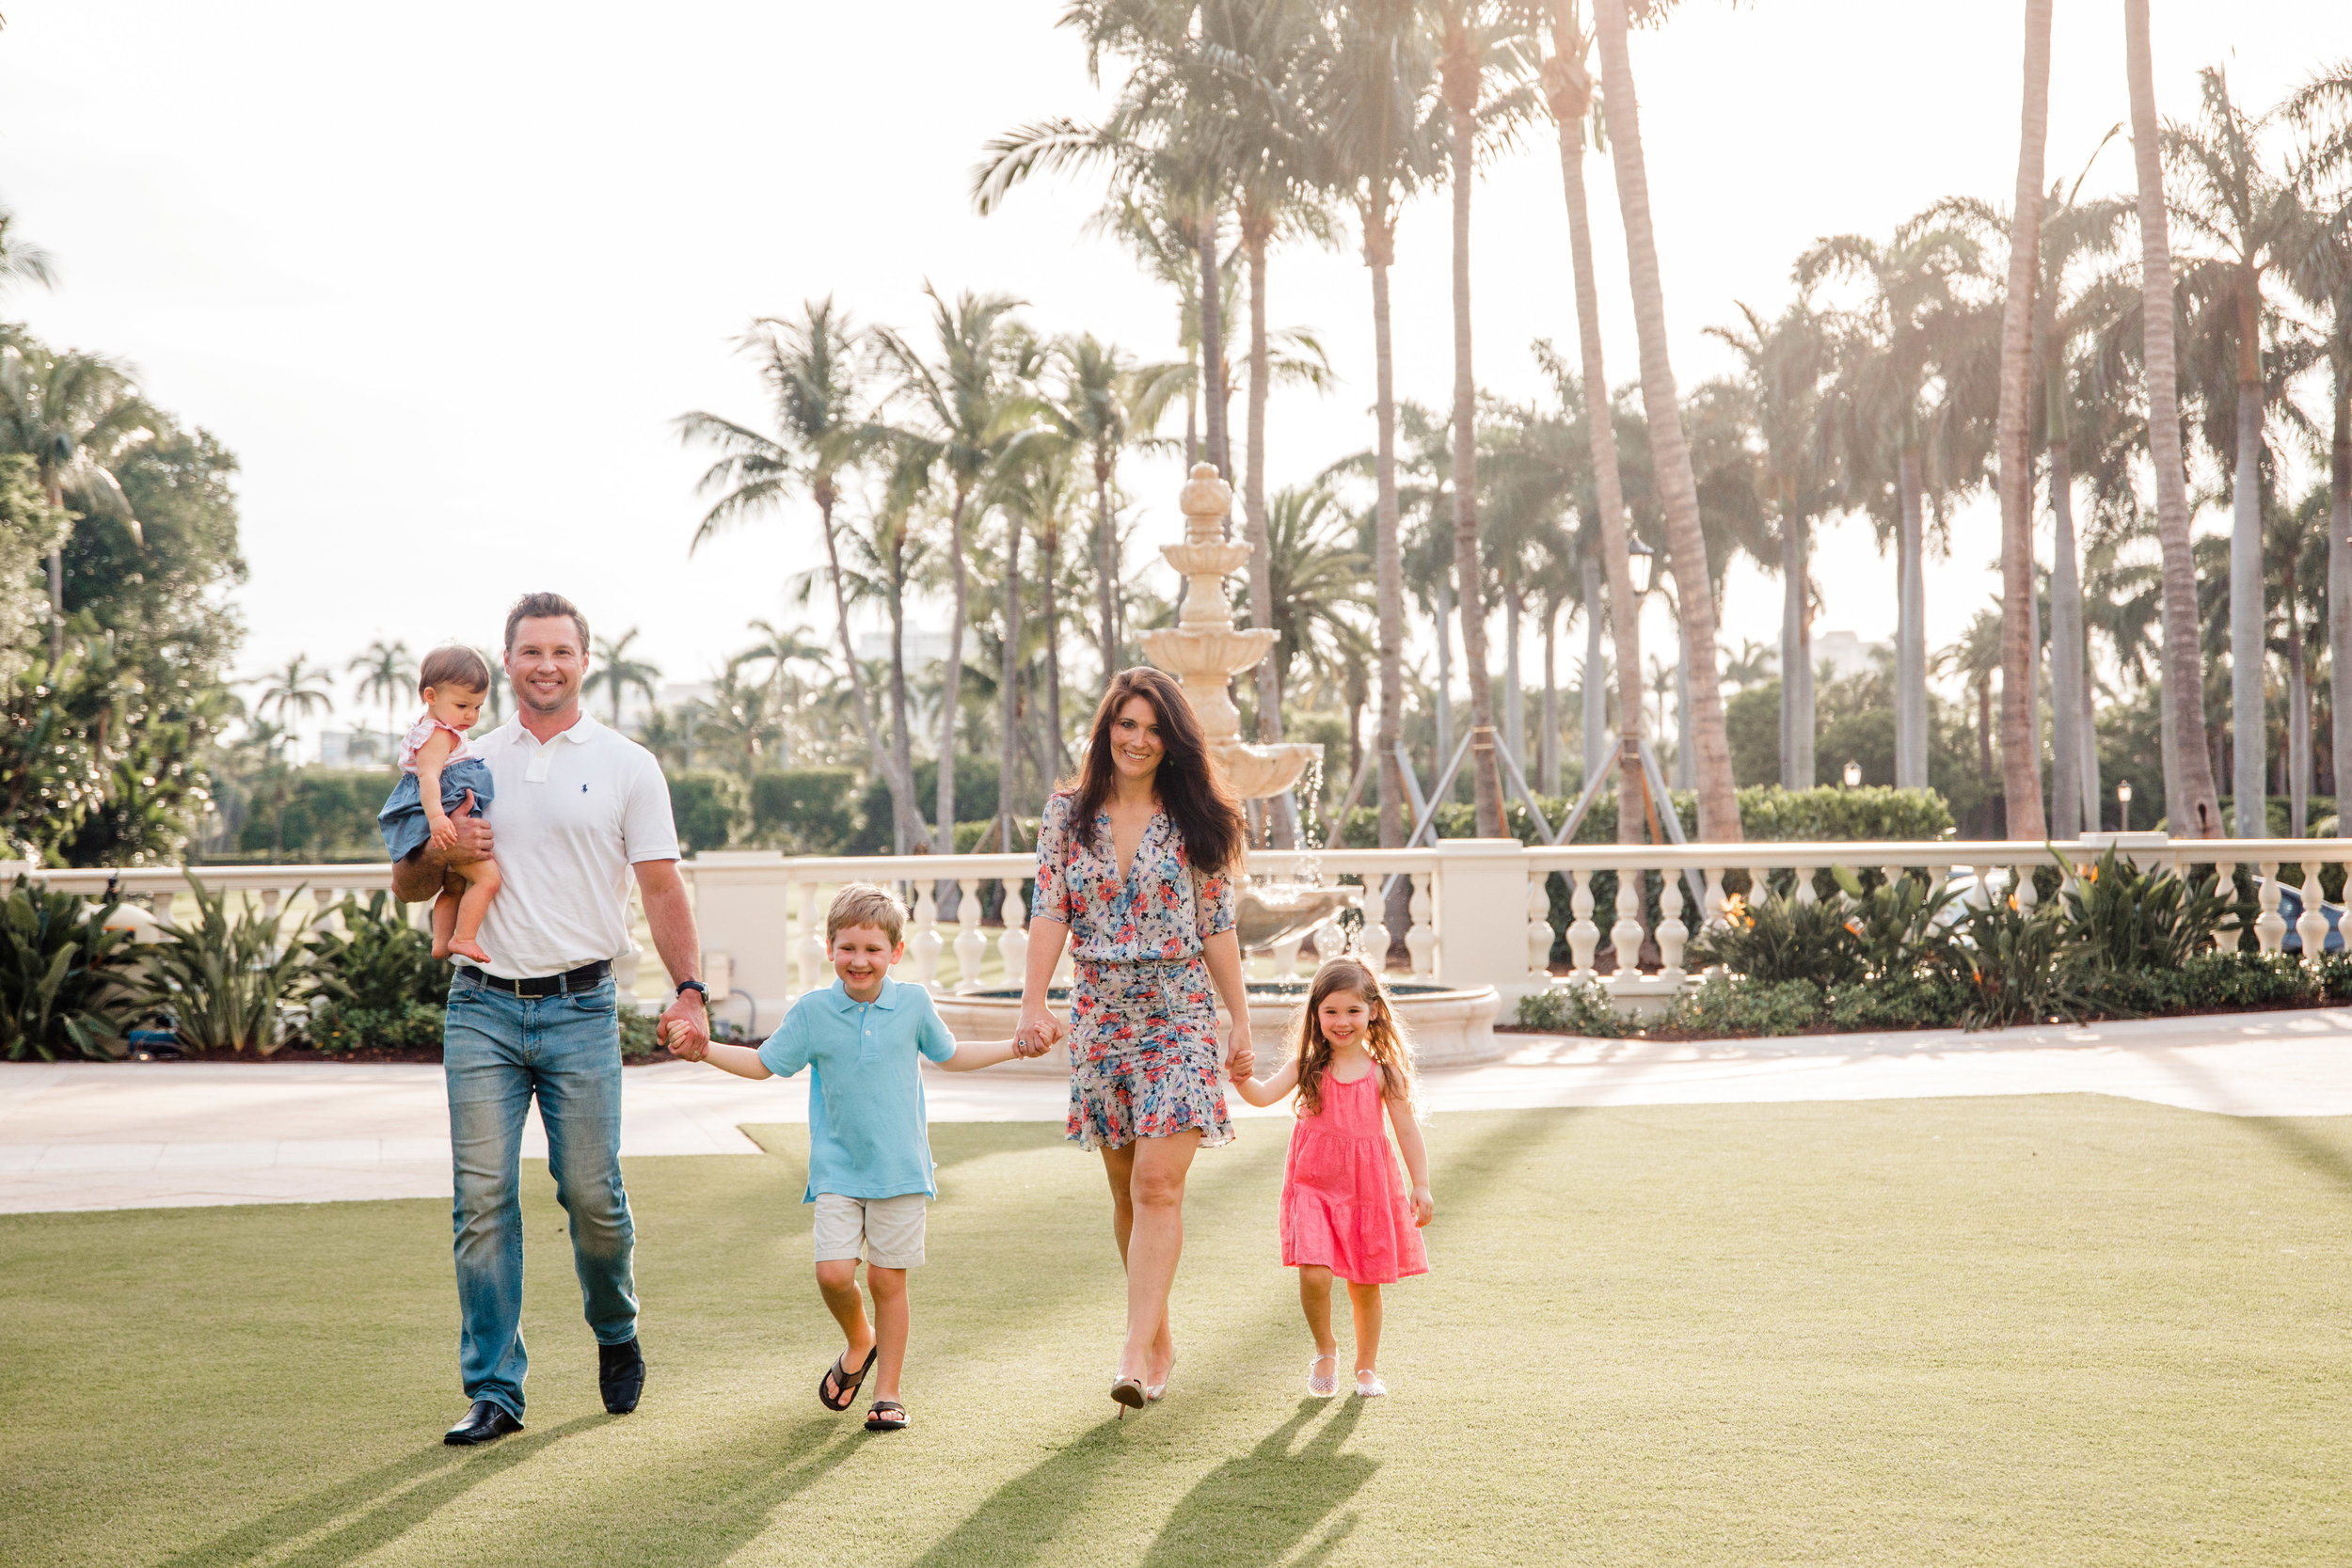 Family photography session at The Breakers Palm Beach